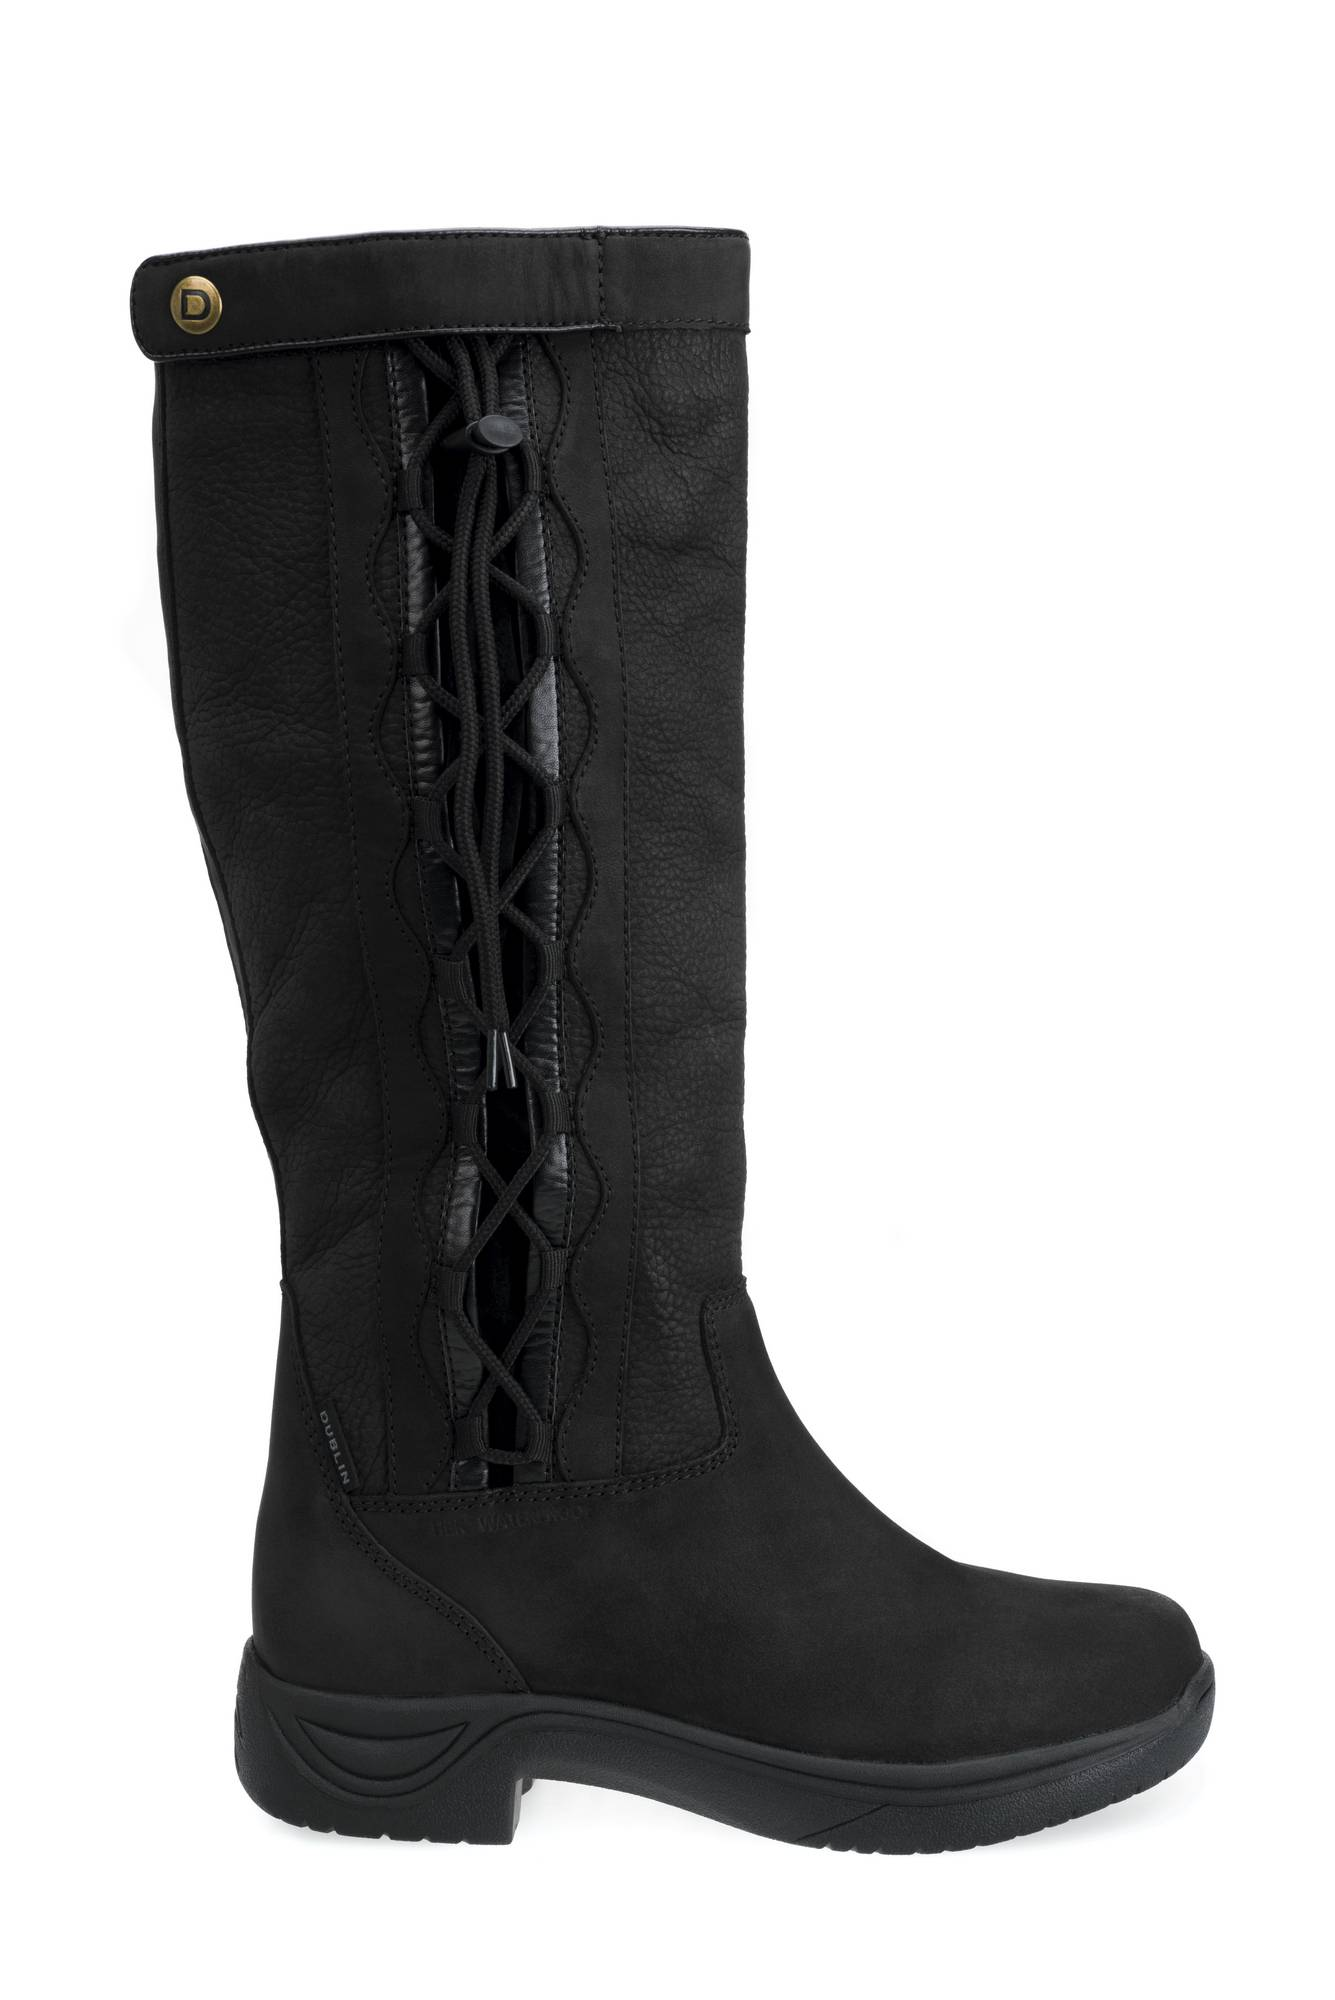 Dublin Pinnacle Ladies Boot